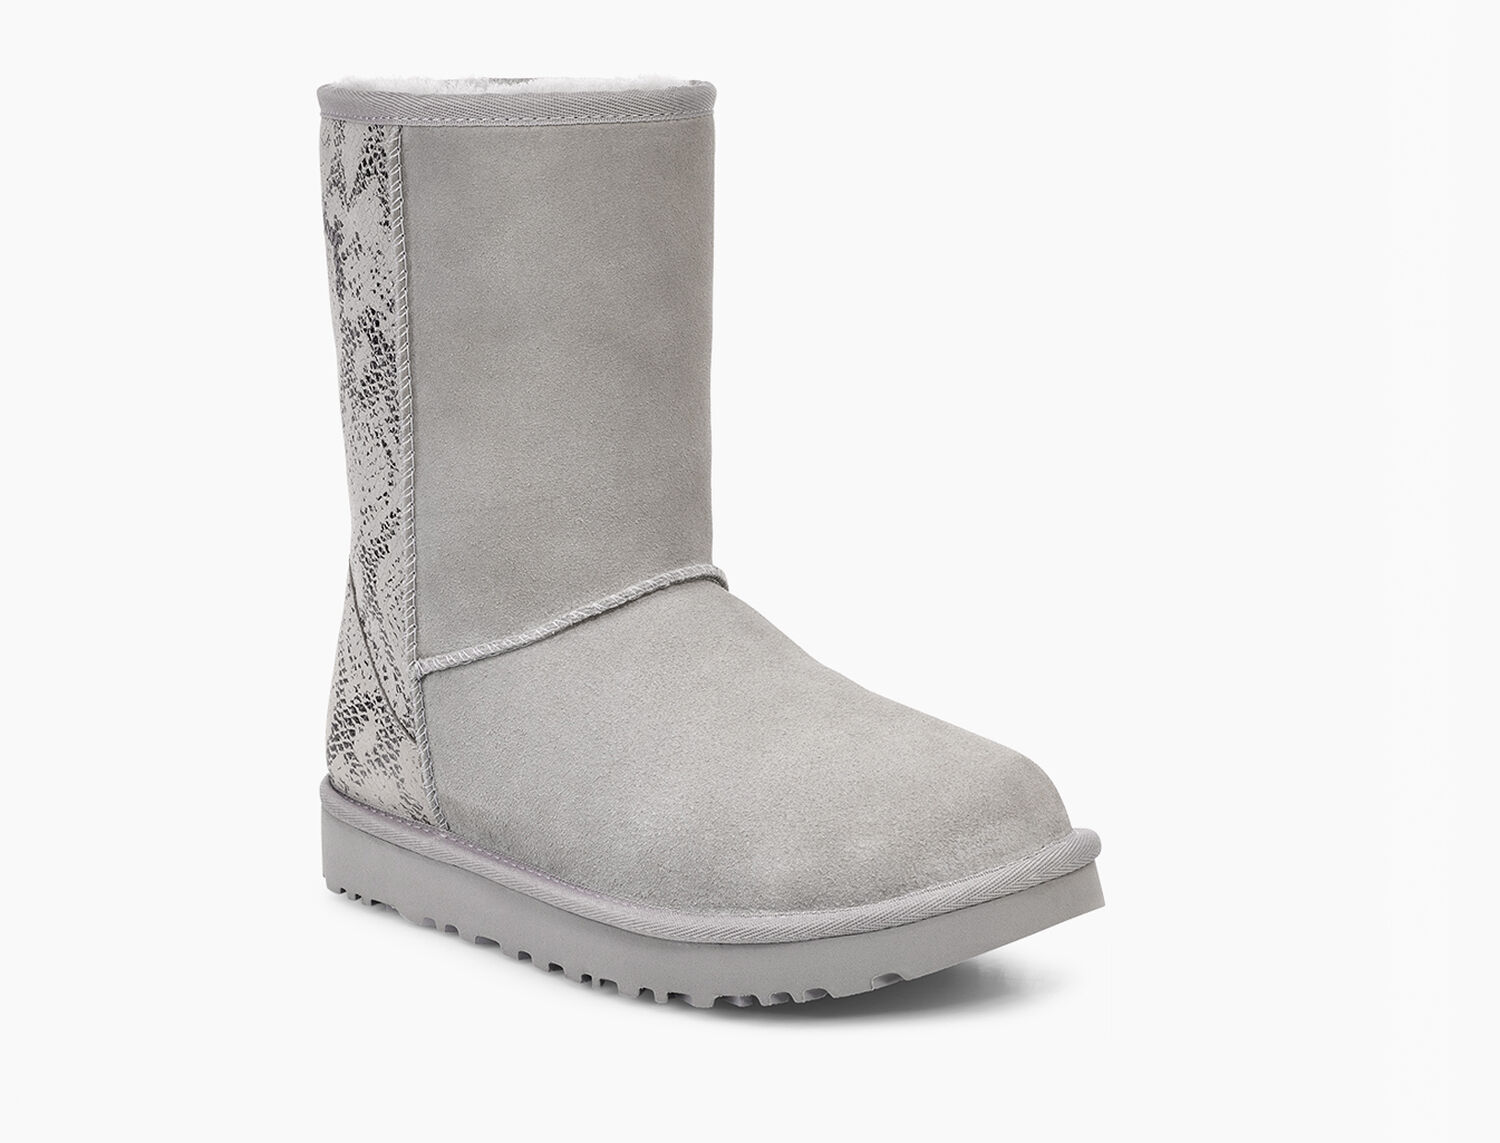 46705918ea0 Women's Share this product Classic Short Metallic Snake Boot